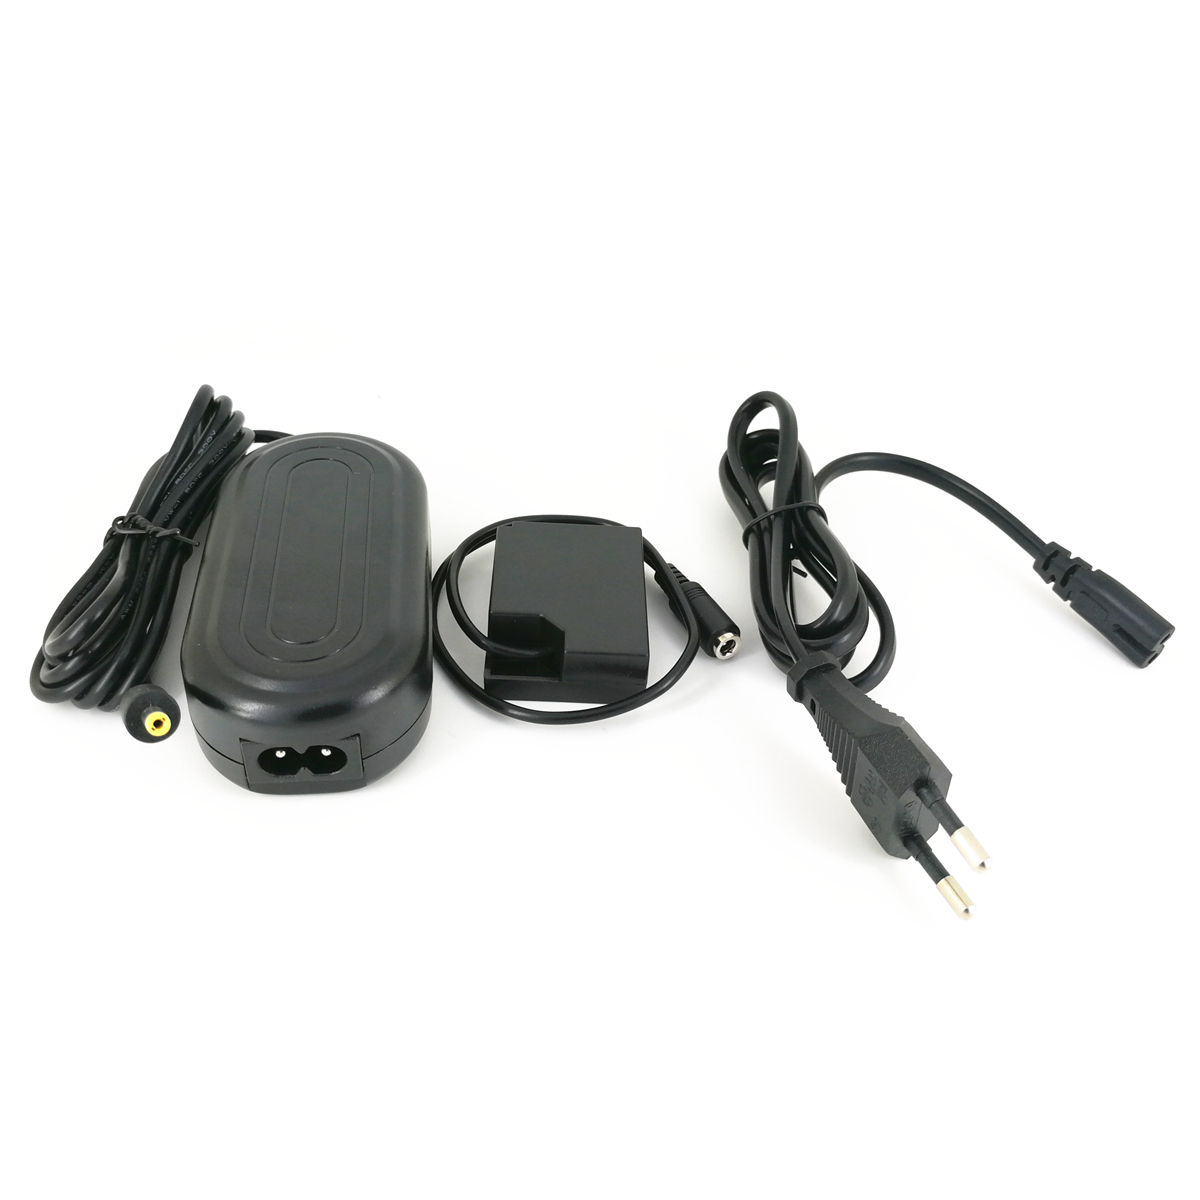 AC Power Adapter + W126 Dummy Battery DC Coupler +US/UK/AU/EU Plug For Fujifilm Fuji AC-V9 Charger Adaptor As CP-W126 NP-W126